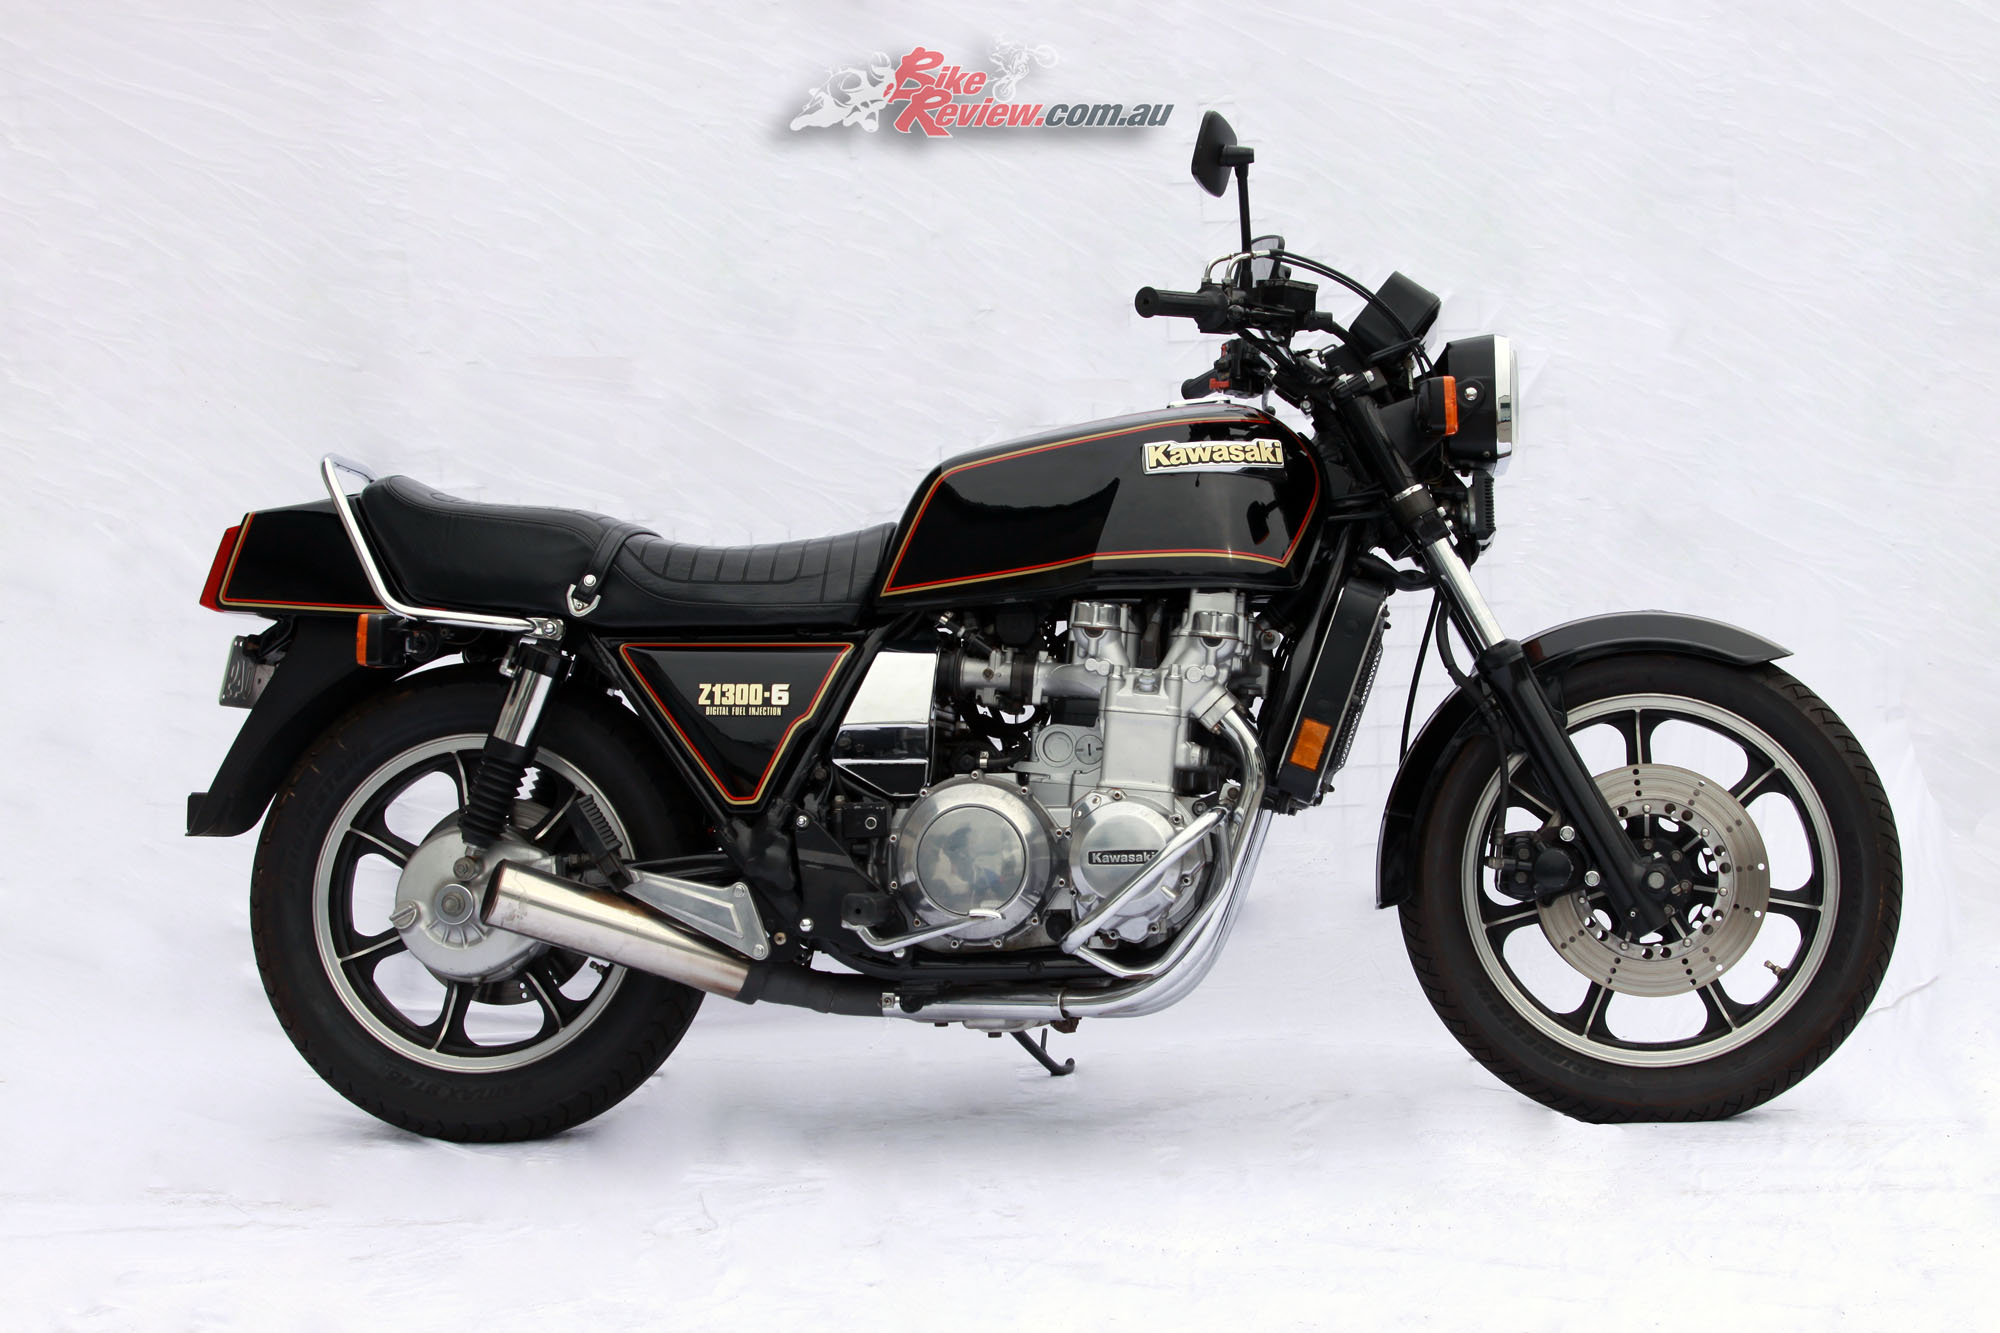 Clic Collectable: Kawasaki Z1300 Six - Bike Review